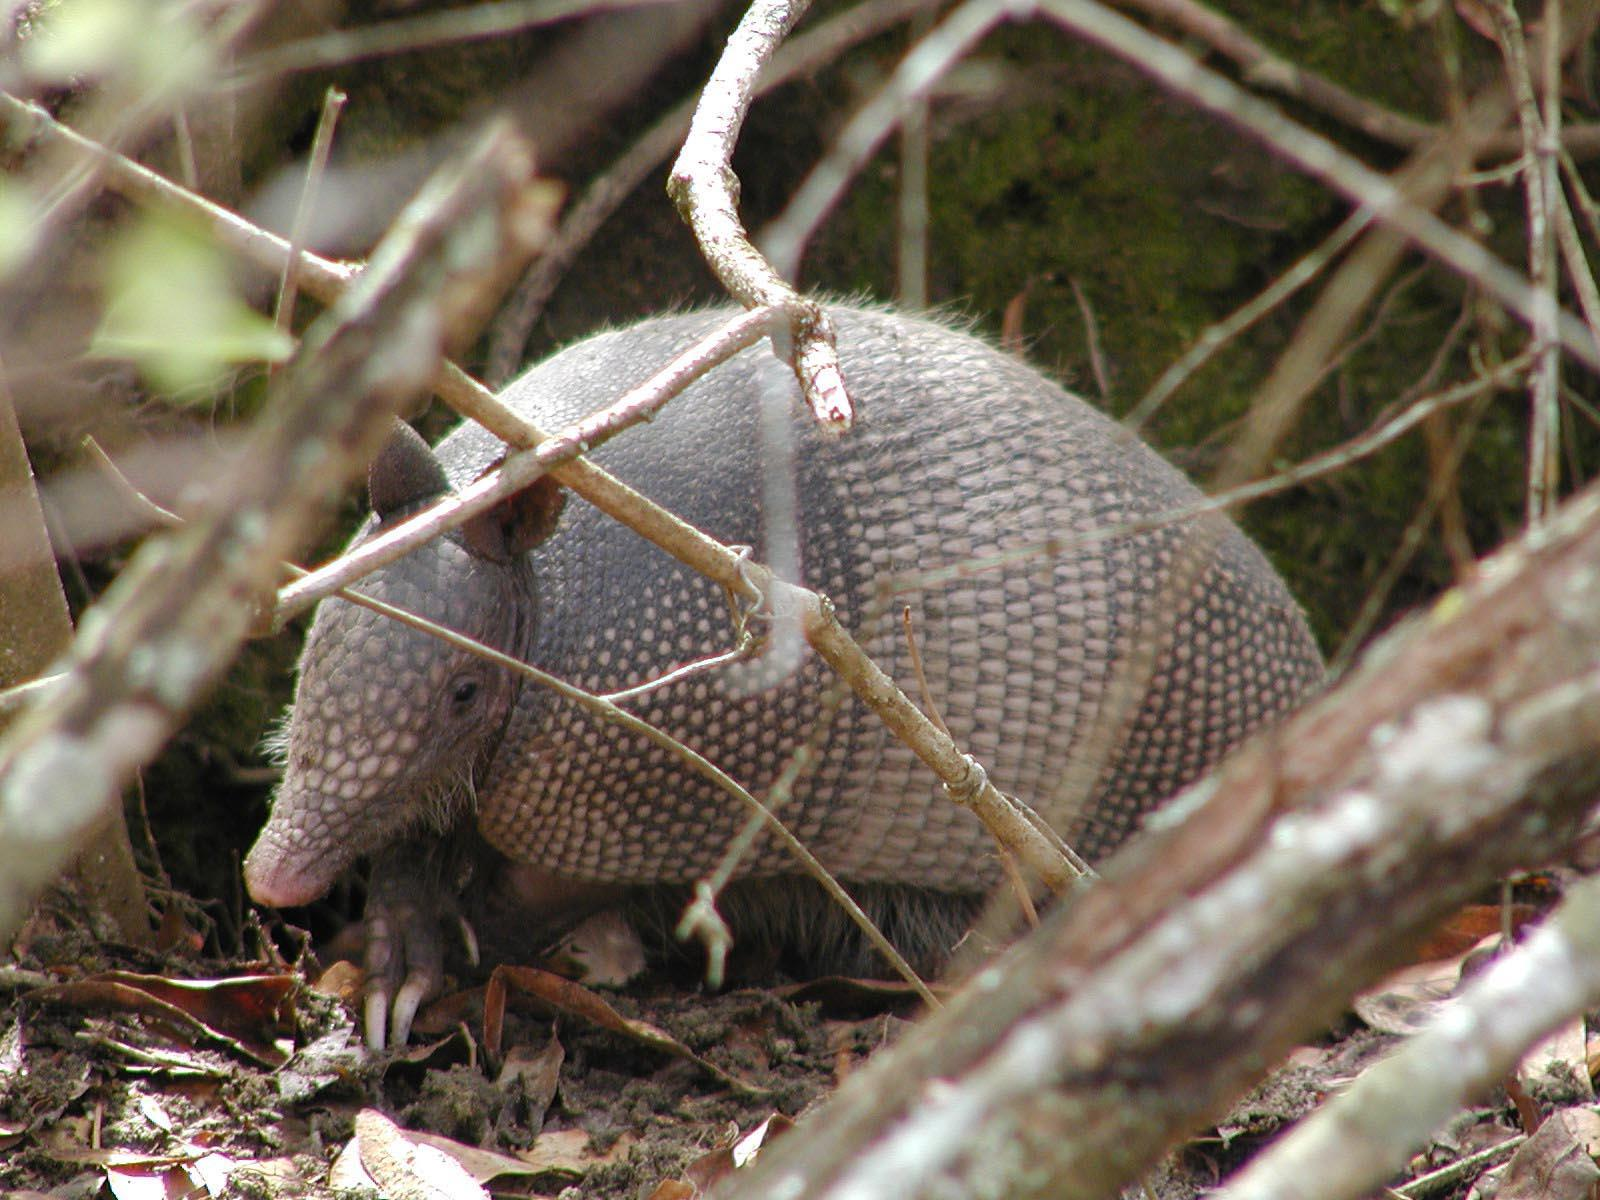 armadillos in your backyard